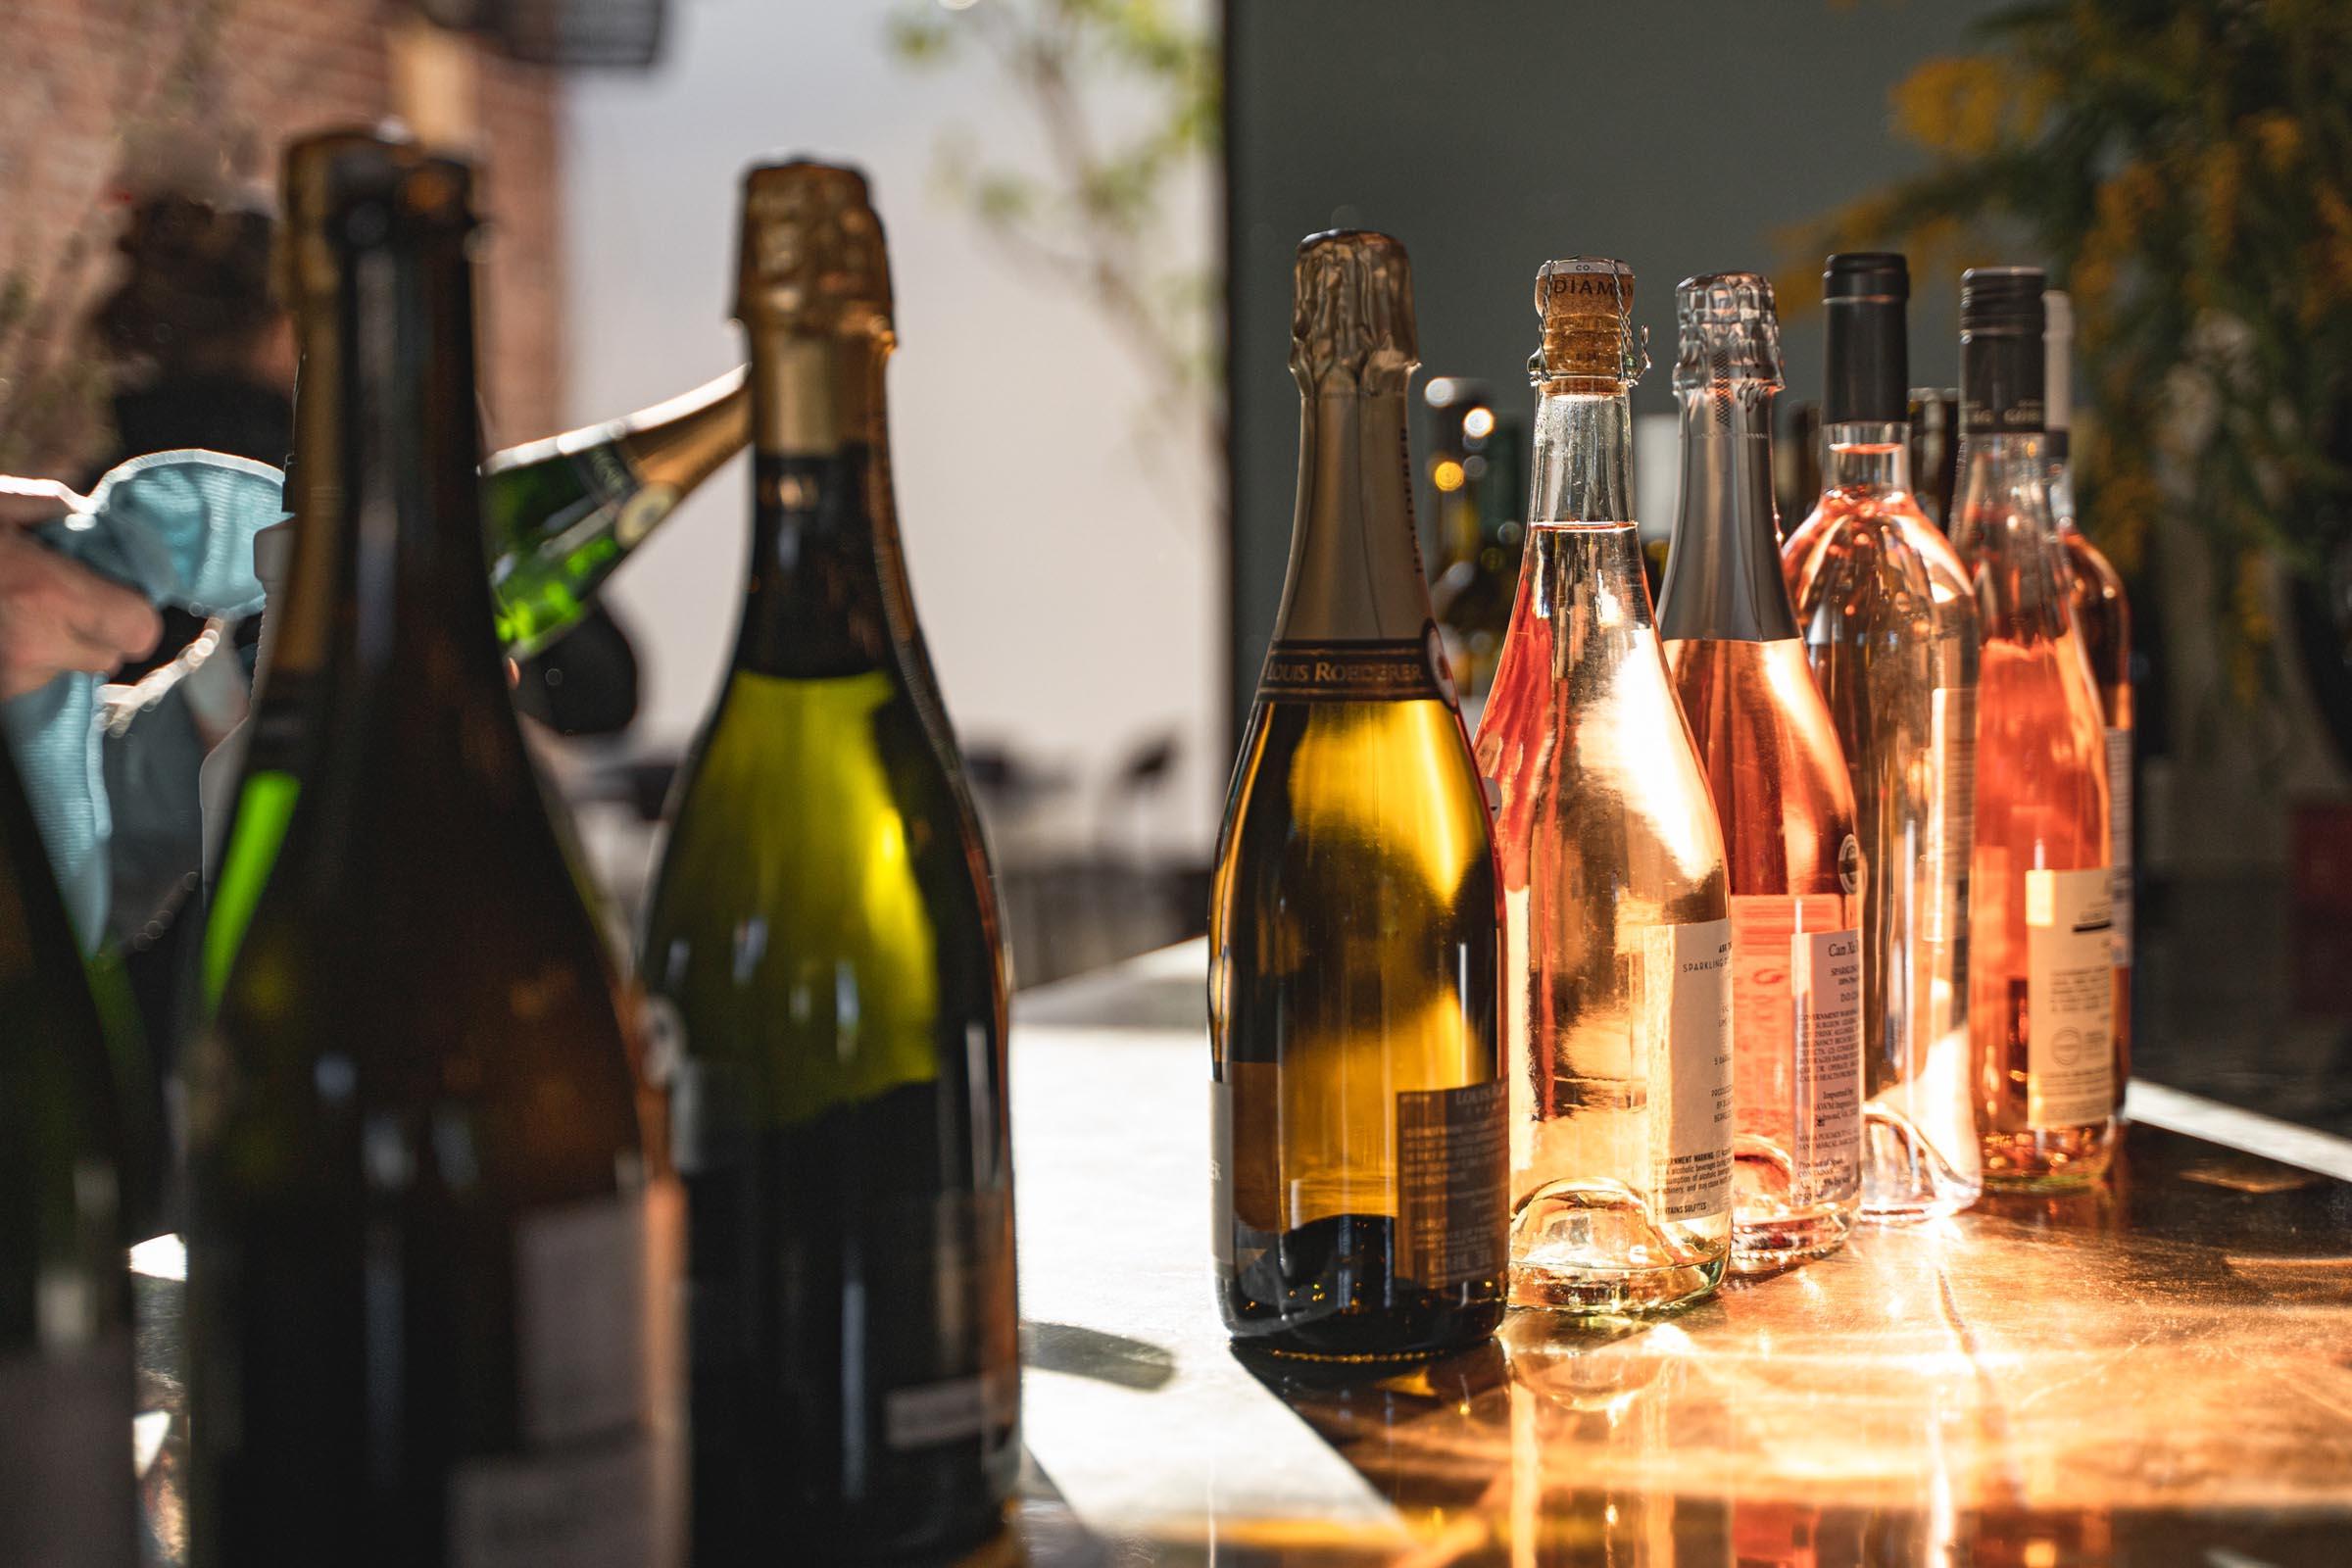 A Picture of wine bottles catching the morning sun